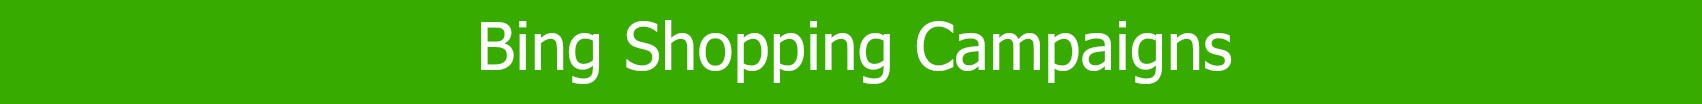 online-retailers-bing-shopping-campaigns